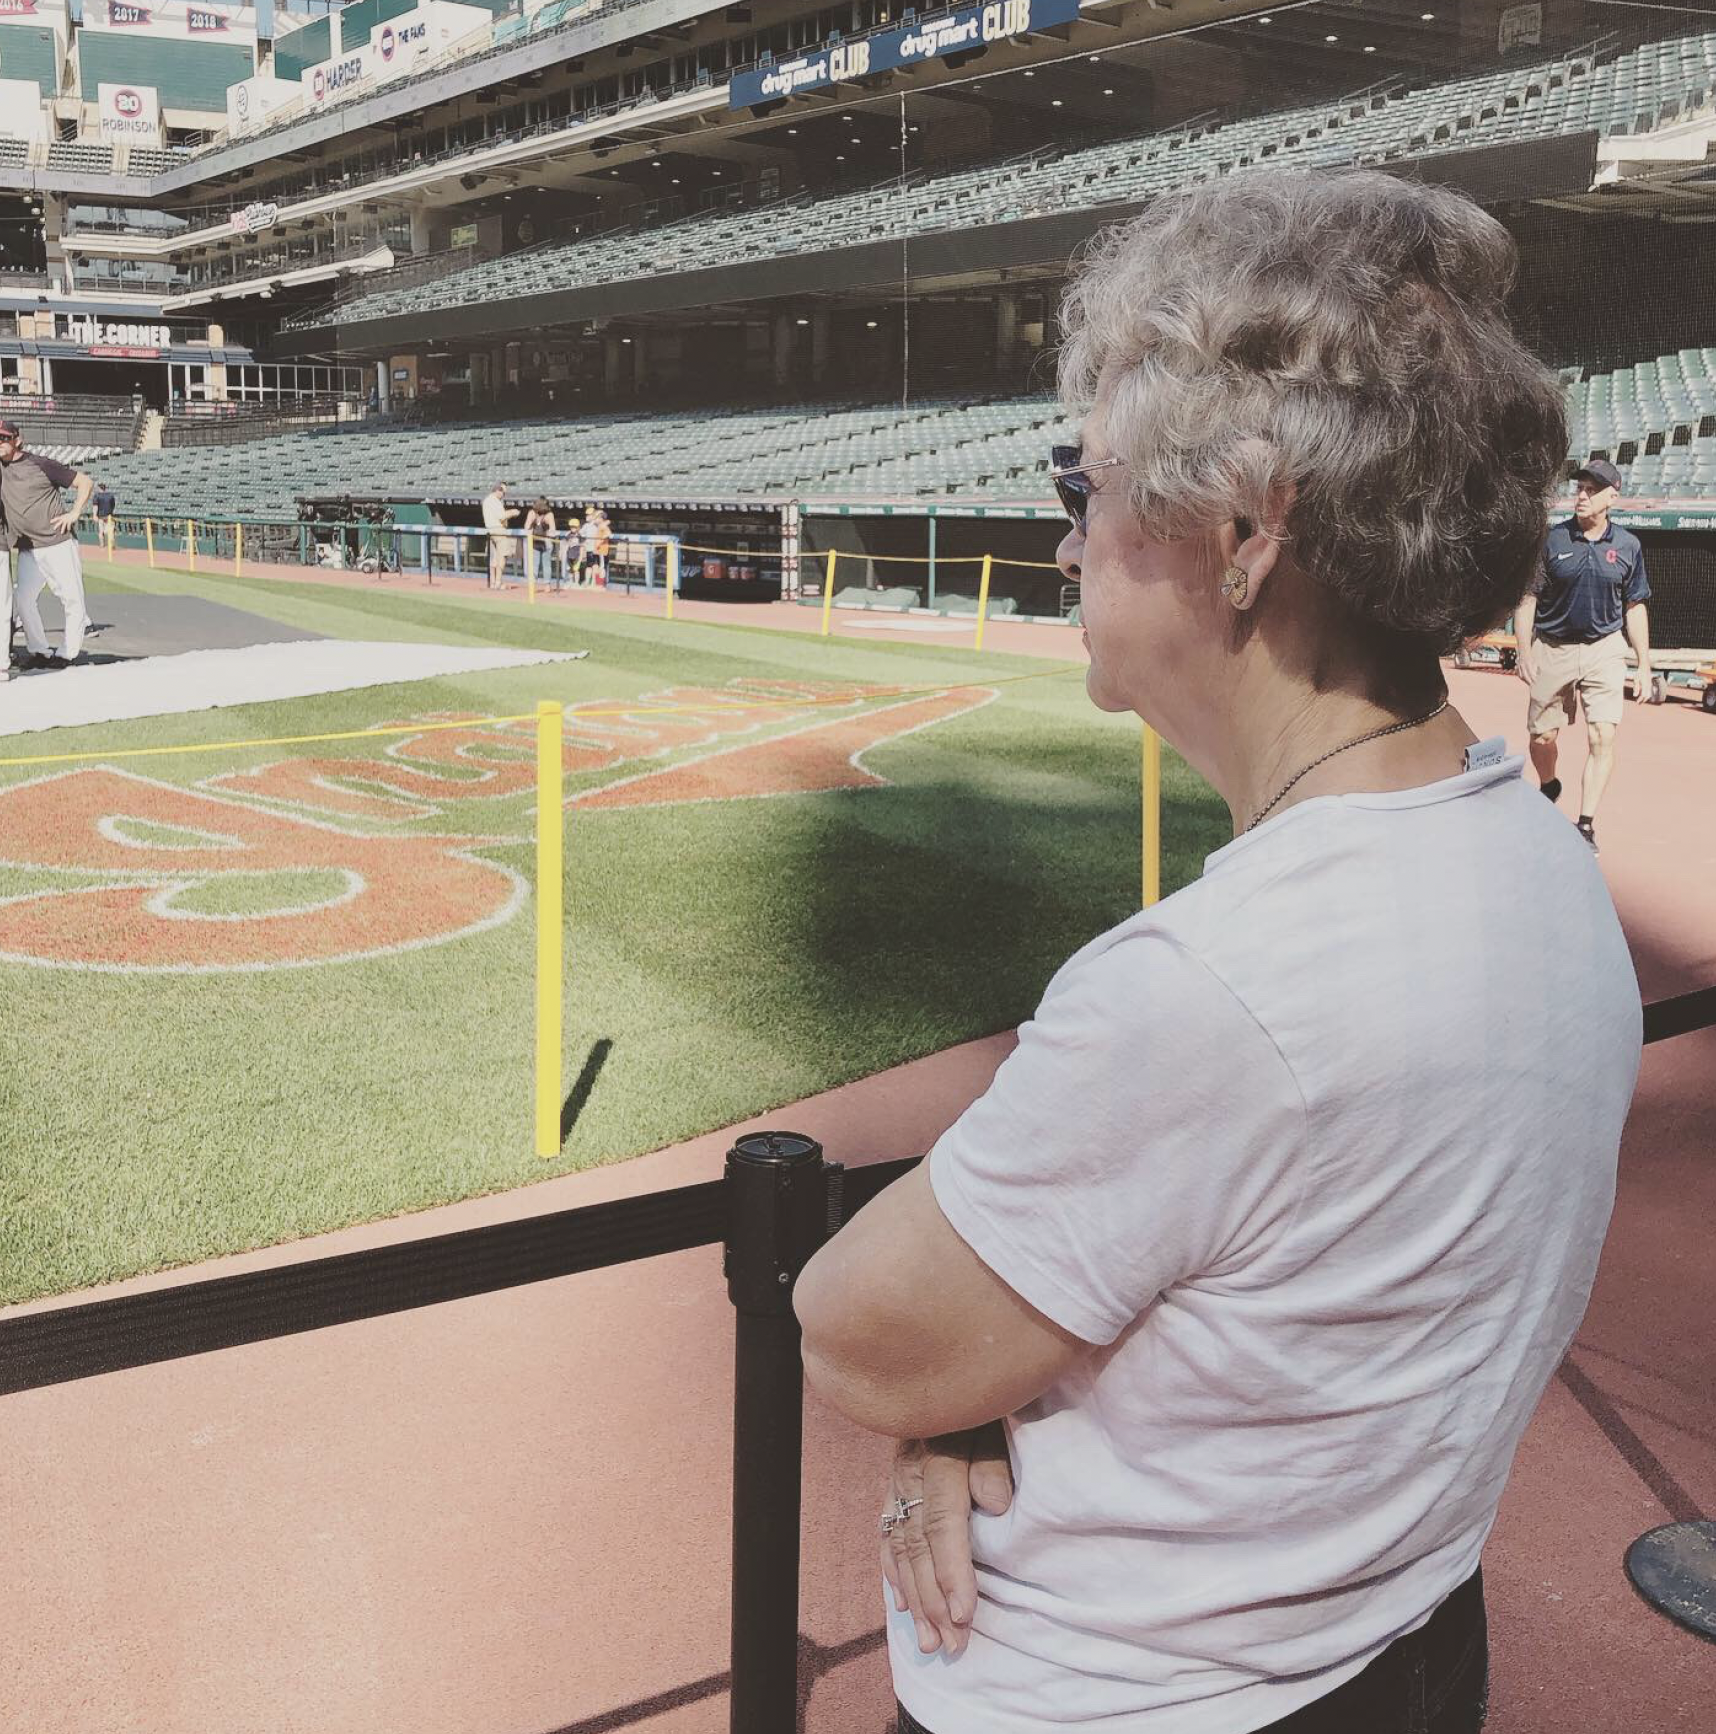 My mom hanging out with me at BP practice before the Cleveland Indians game in July. She's not too old to do anything, I promise you that.